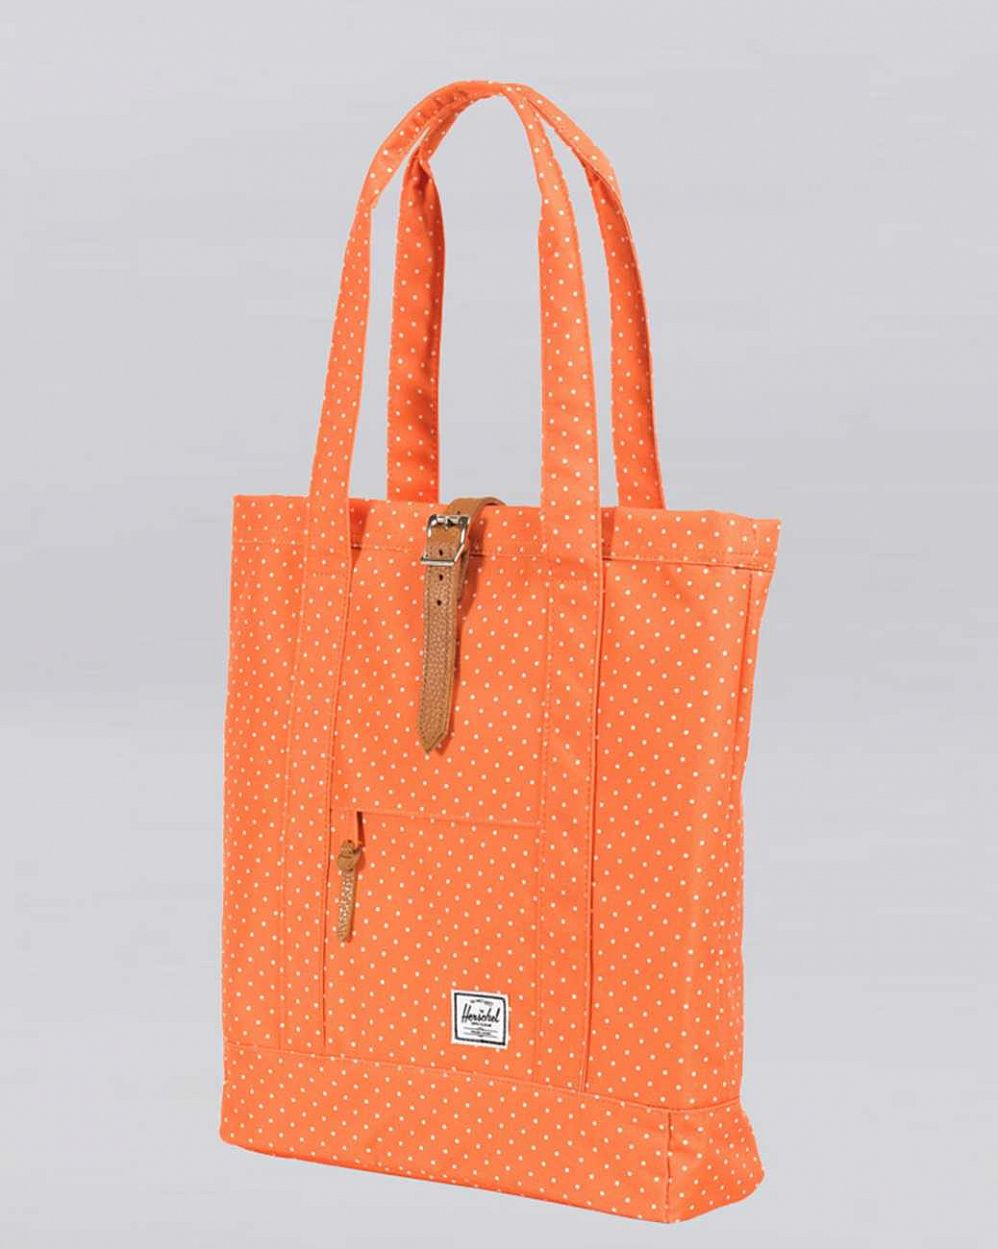 Сумка herschel market orange polka dot отзывы